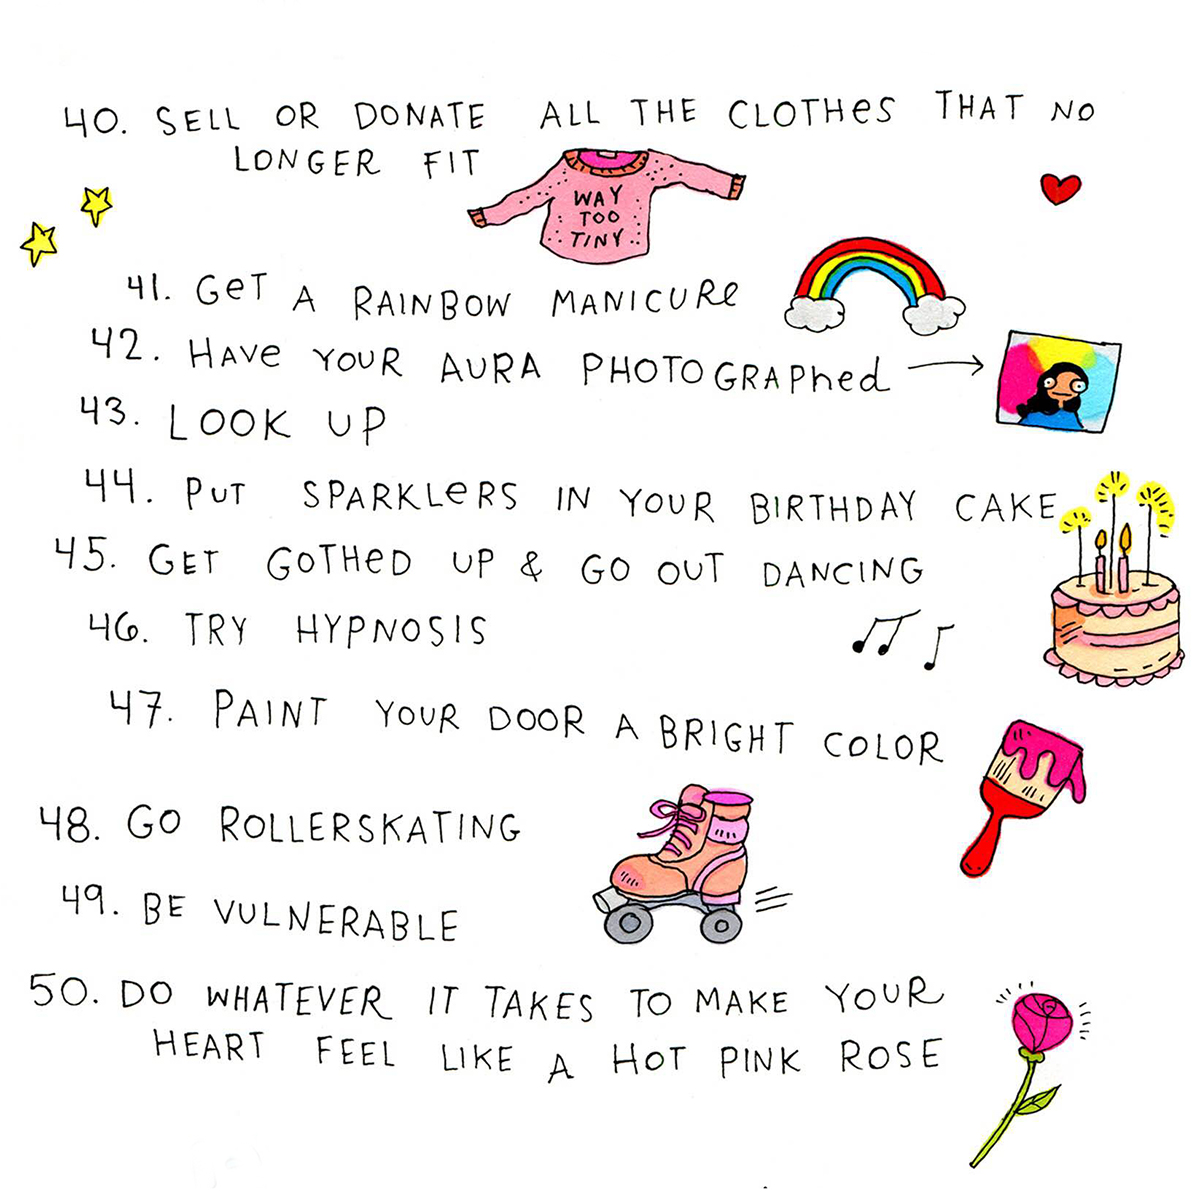 50 Things To Do In An Illustrated List